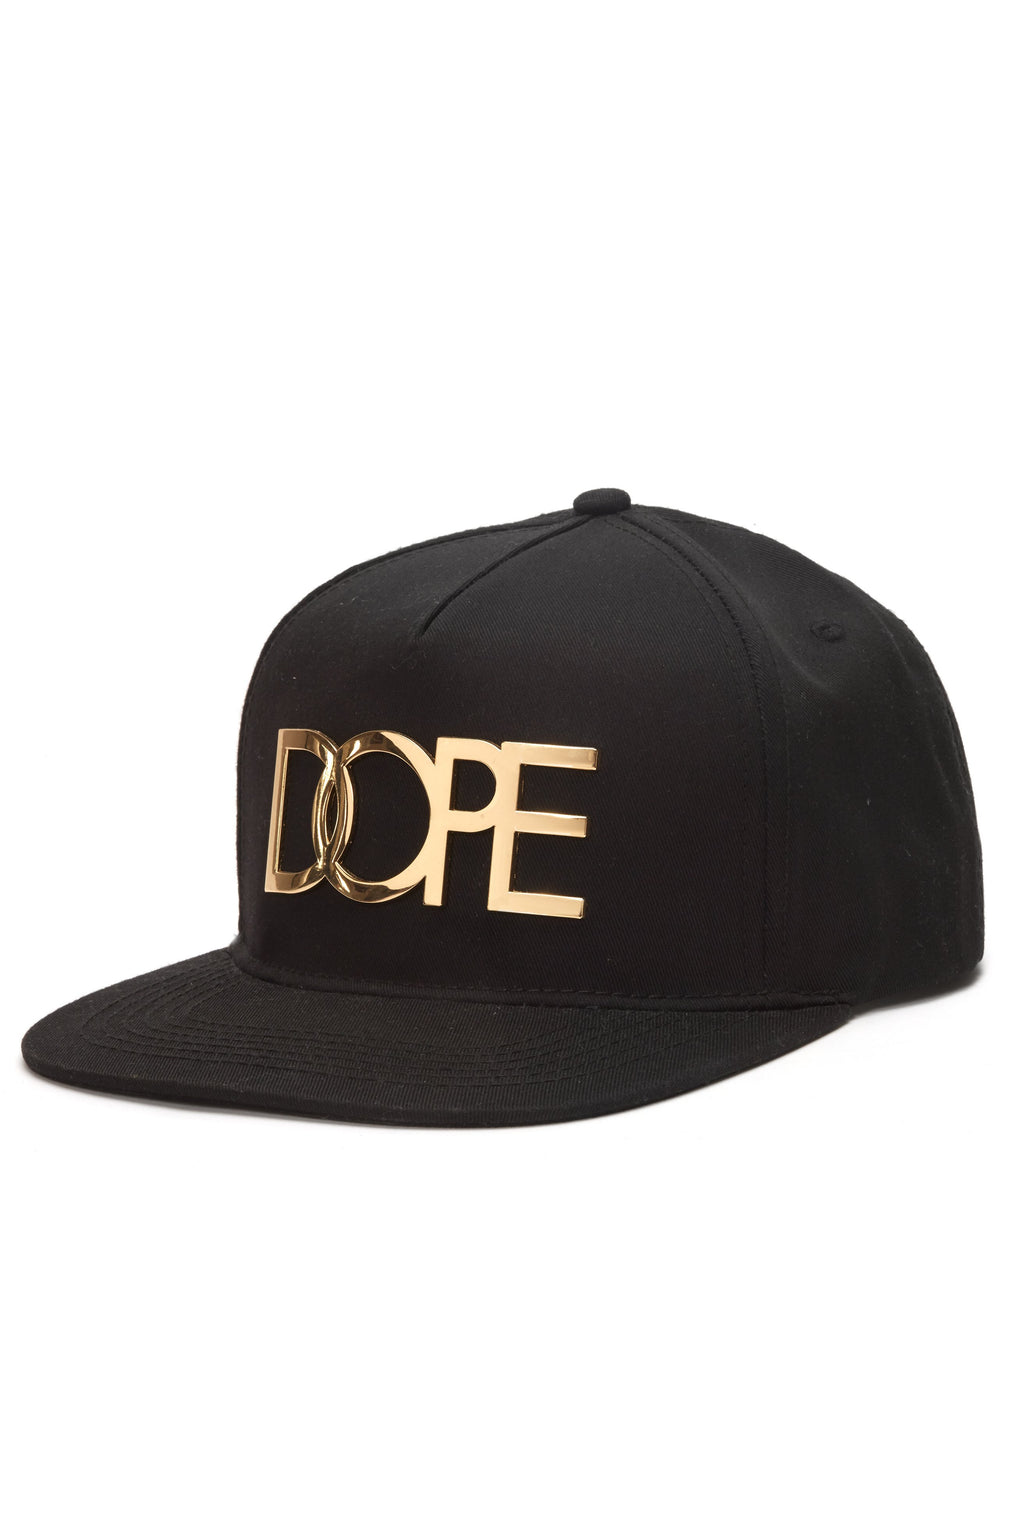 24K Gold Logo New Era Fitted